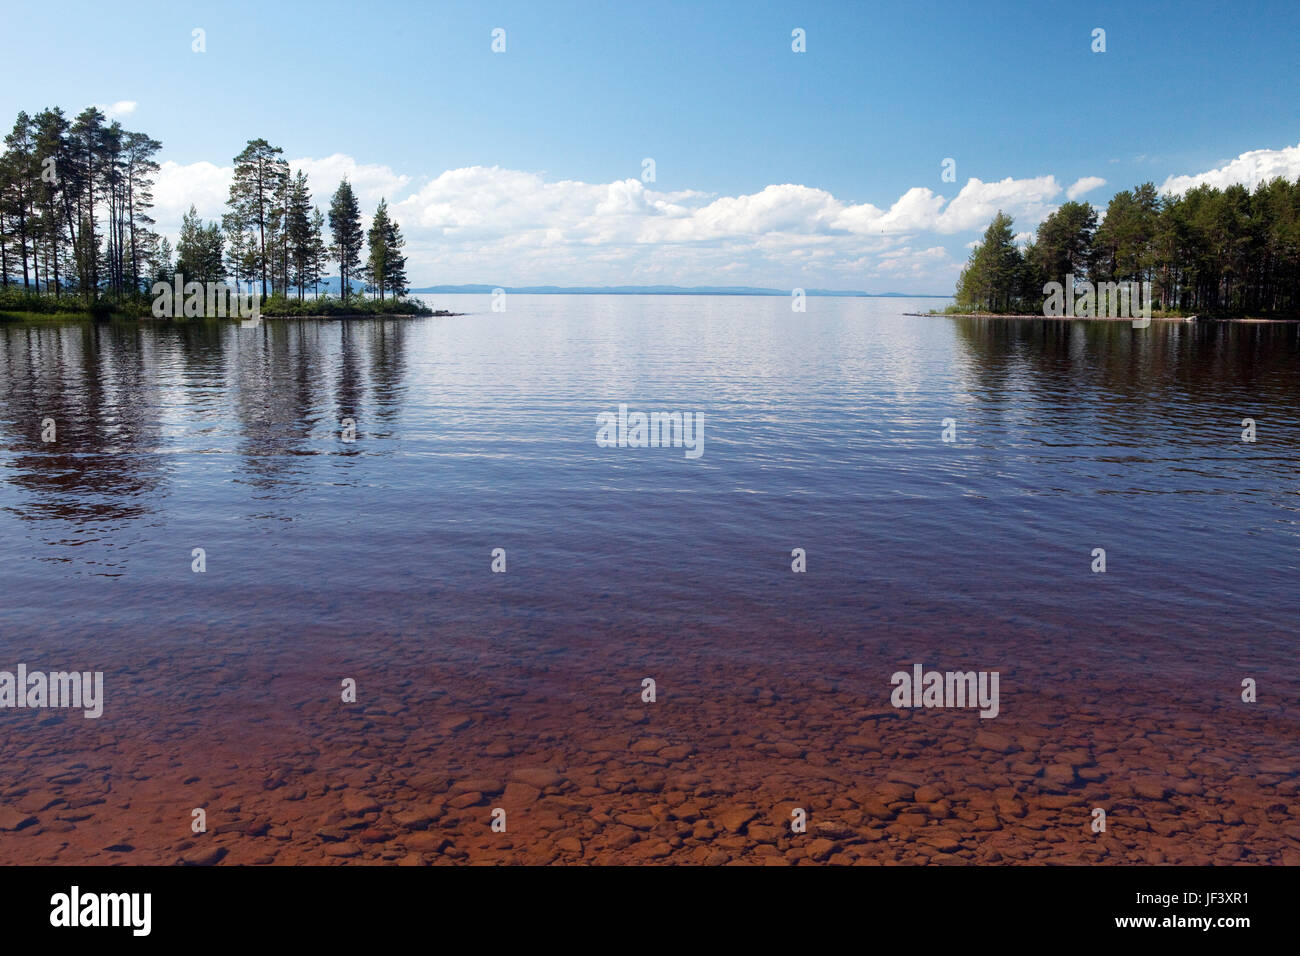 View of lake - Stock Image